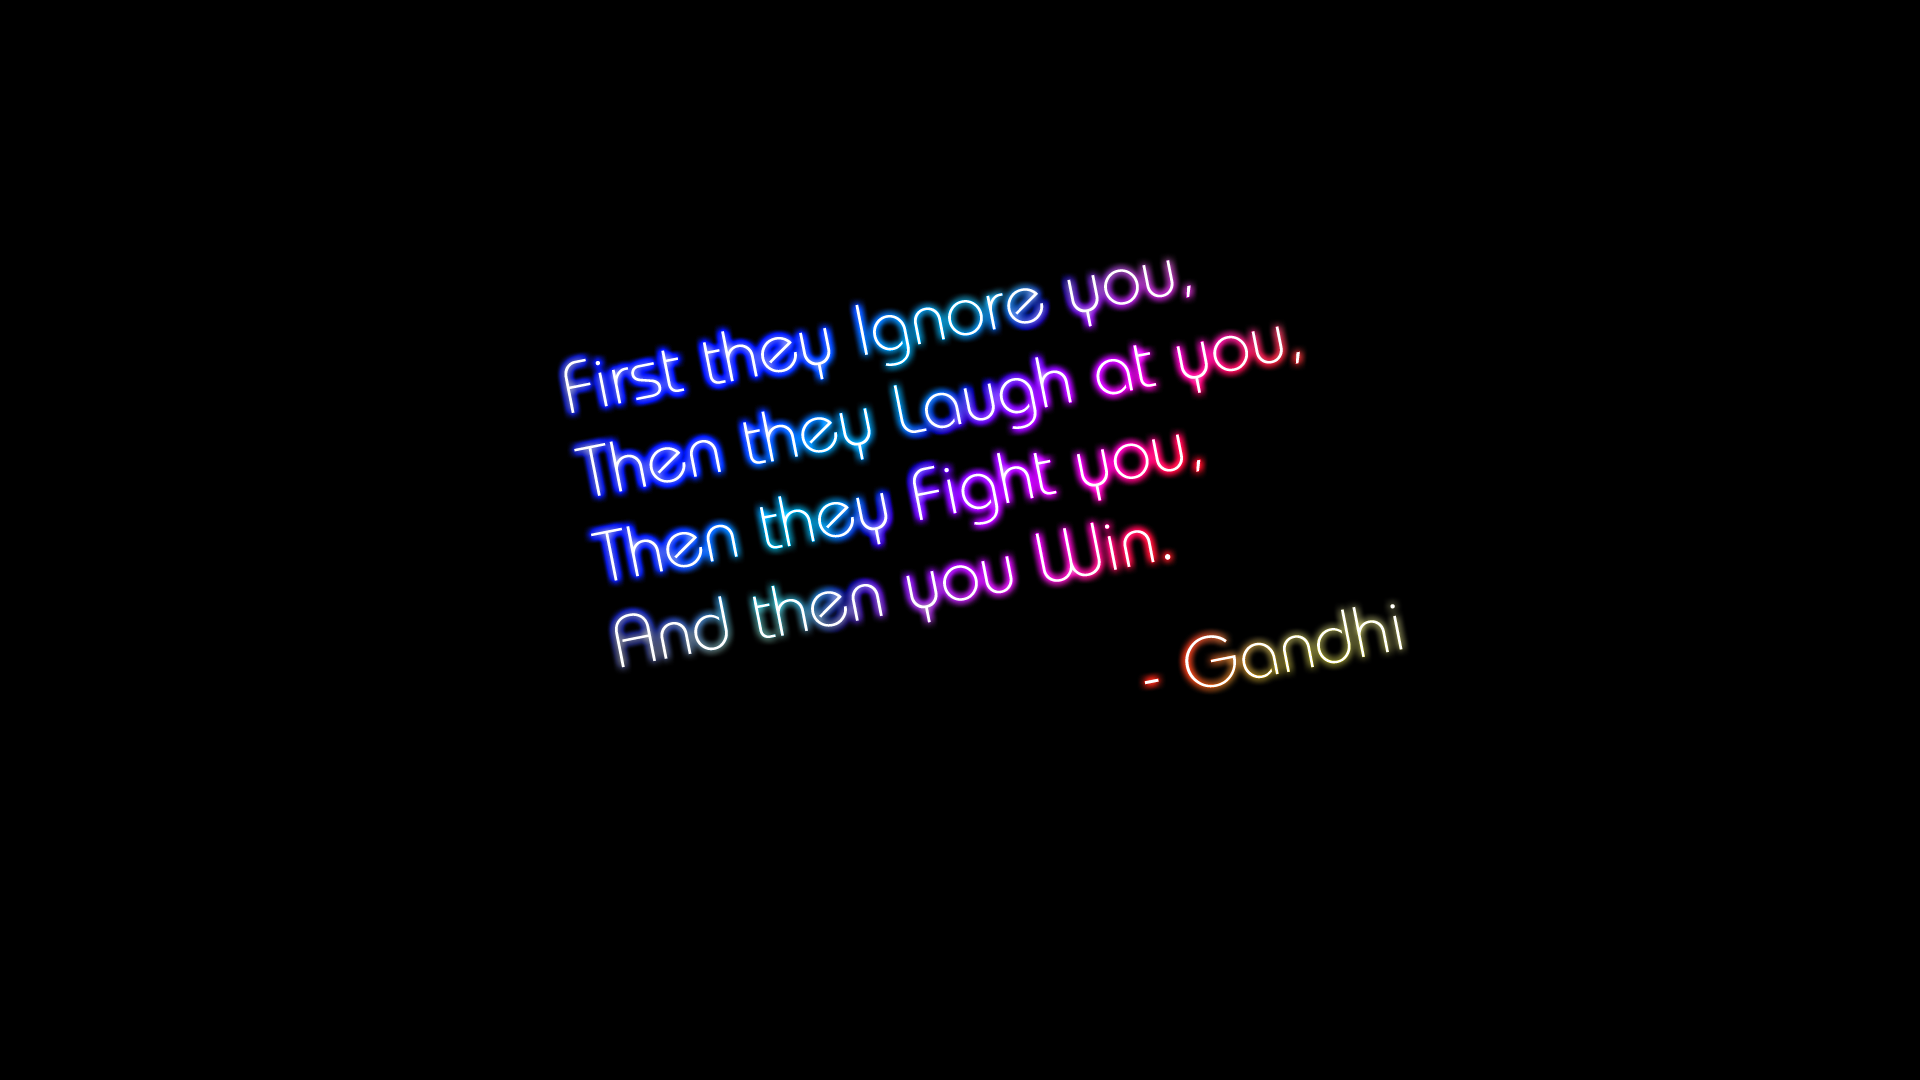 Wallpaper quotes wallpapers images photos pictures backgrounds - Hd wallpapers for laptop with quotes ...